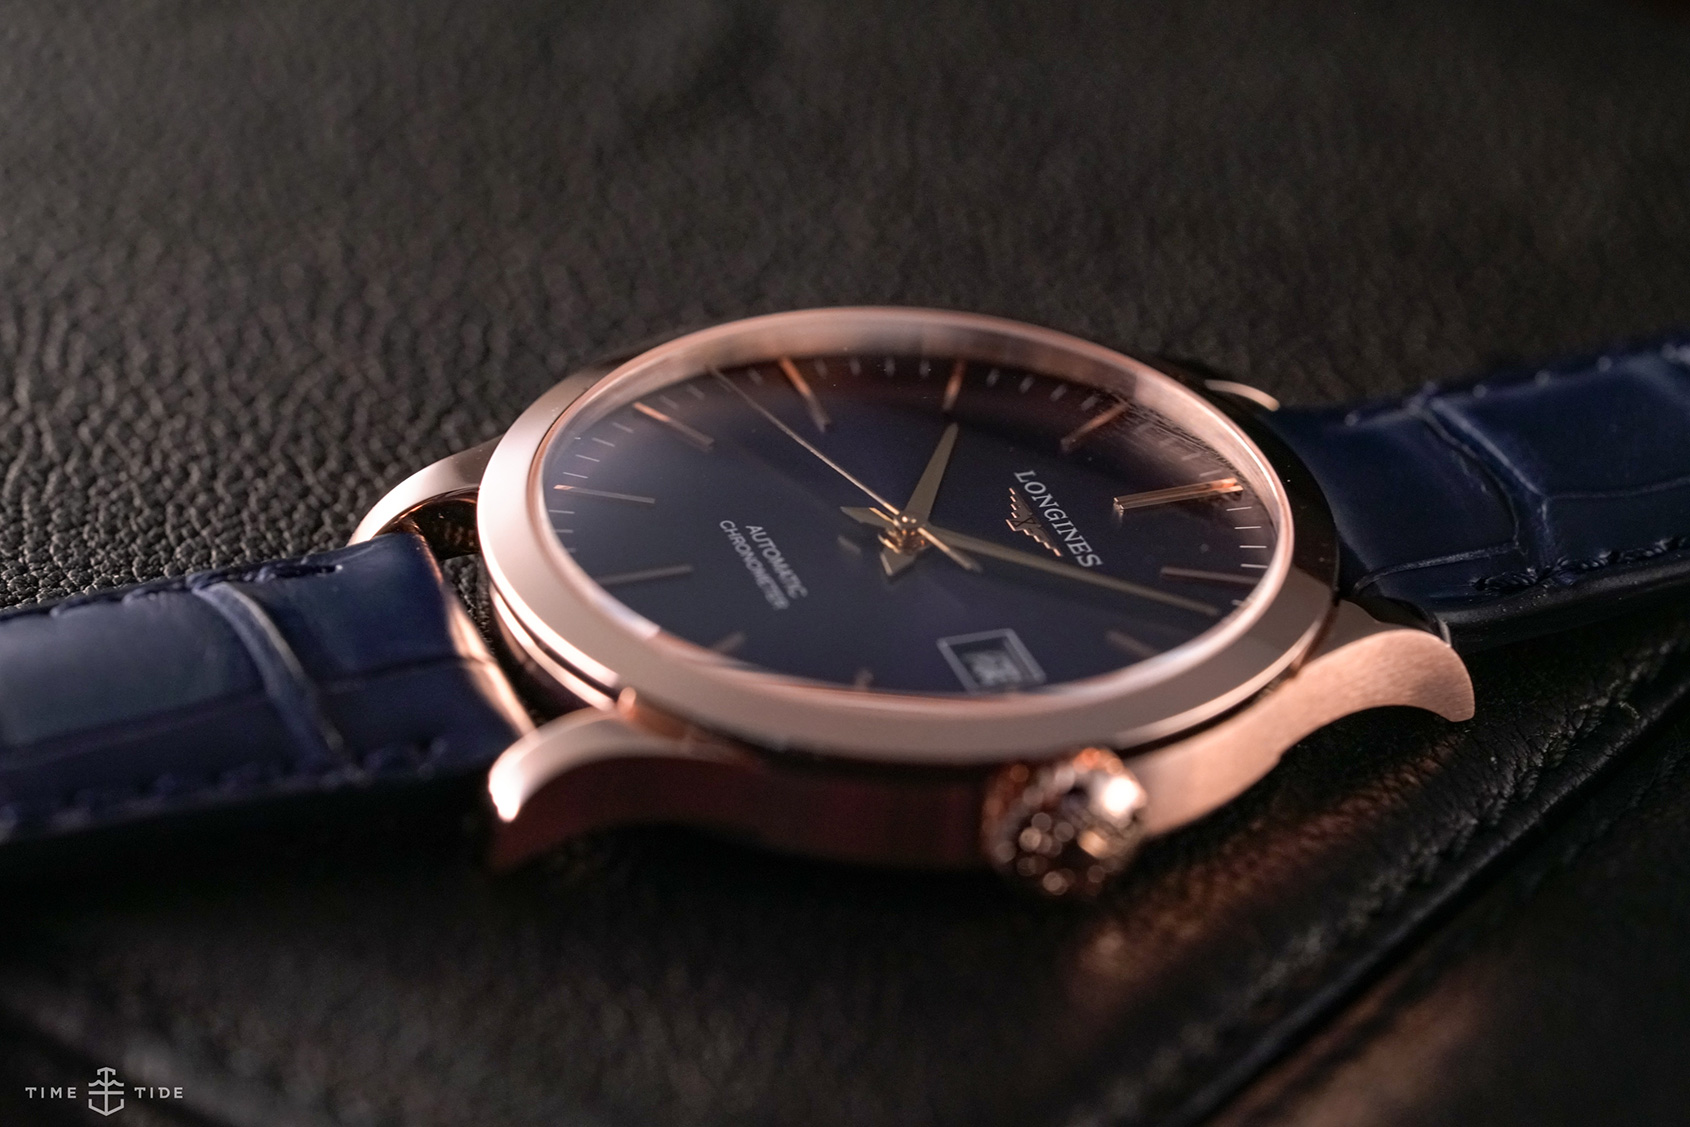 32cafc653 To strap the golden Longines Record to the wrist is a dial-matching blue alligator  leather strap.